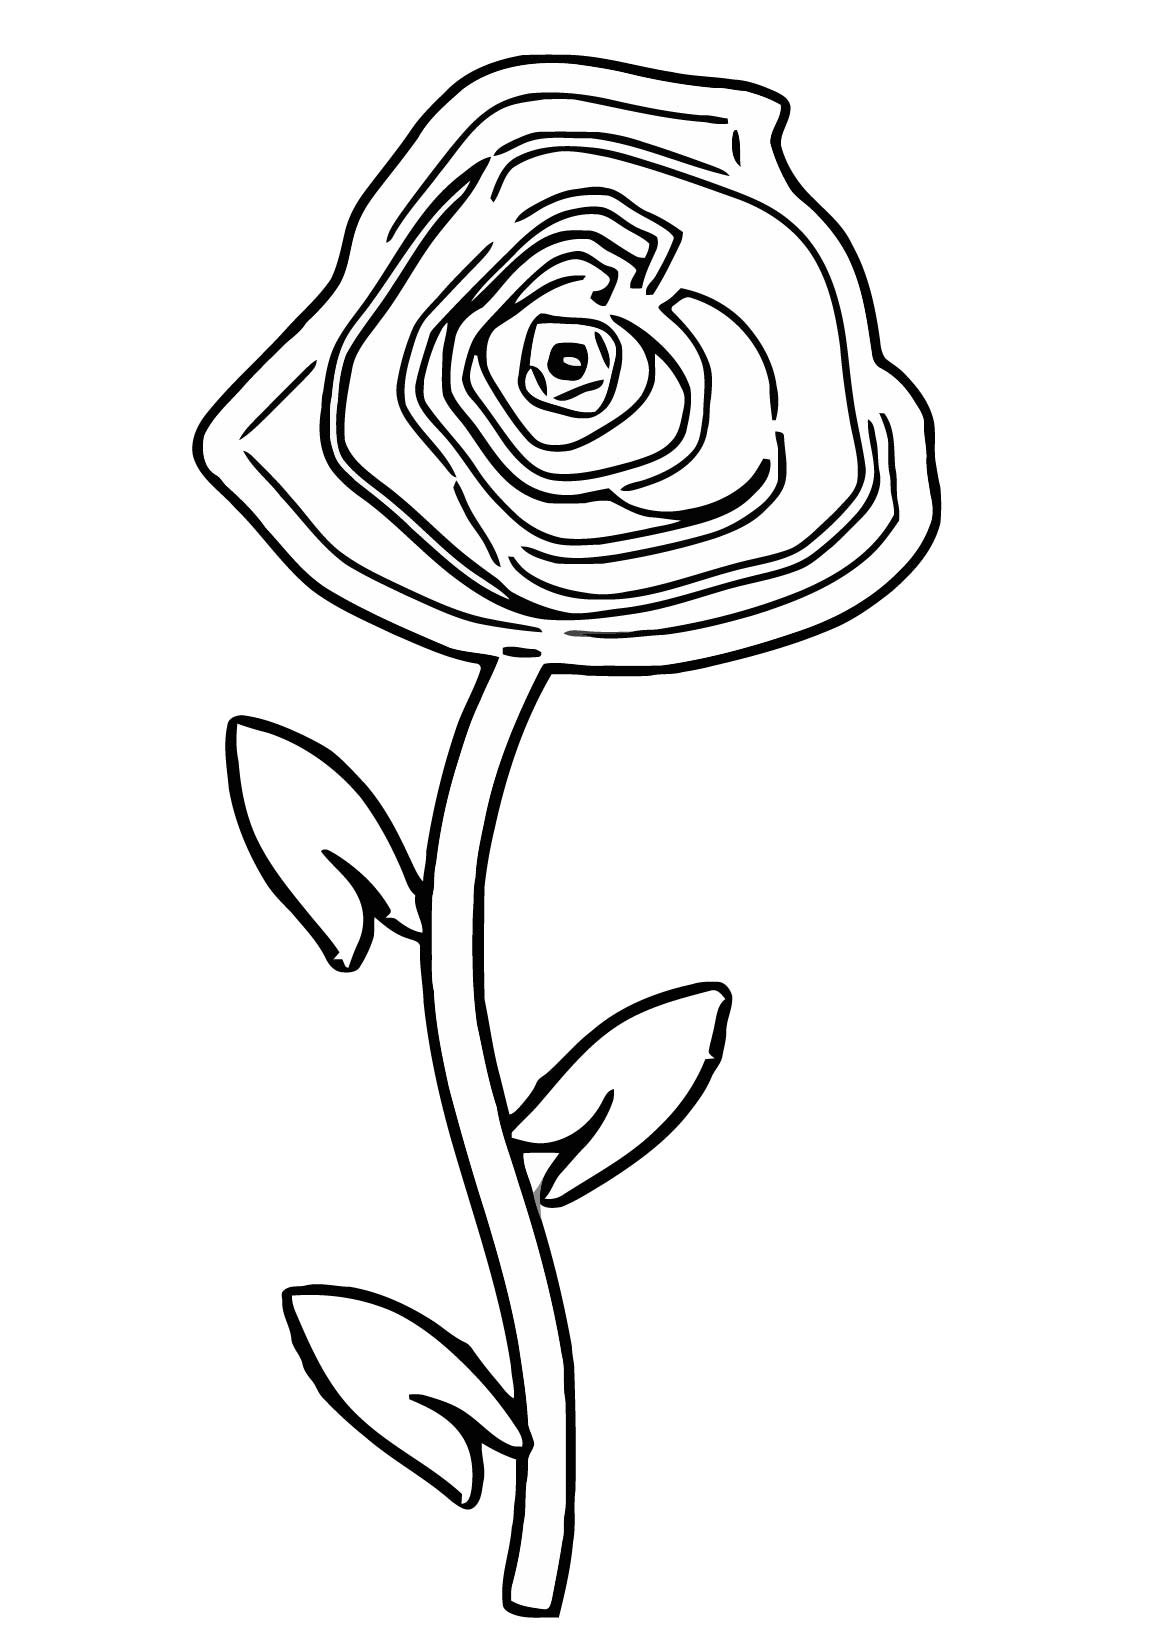 Rose Clip Art 2 Coloring Page